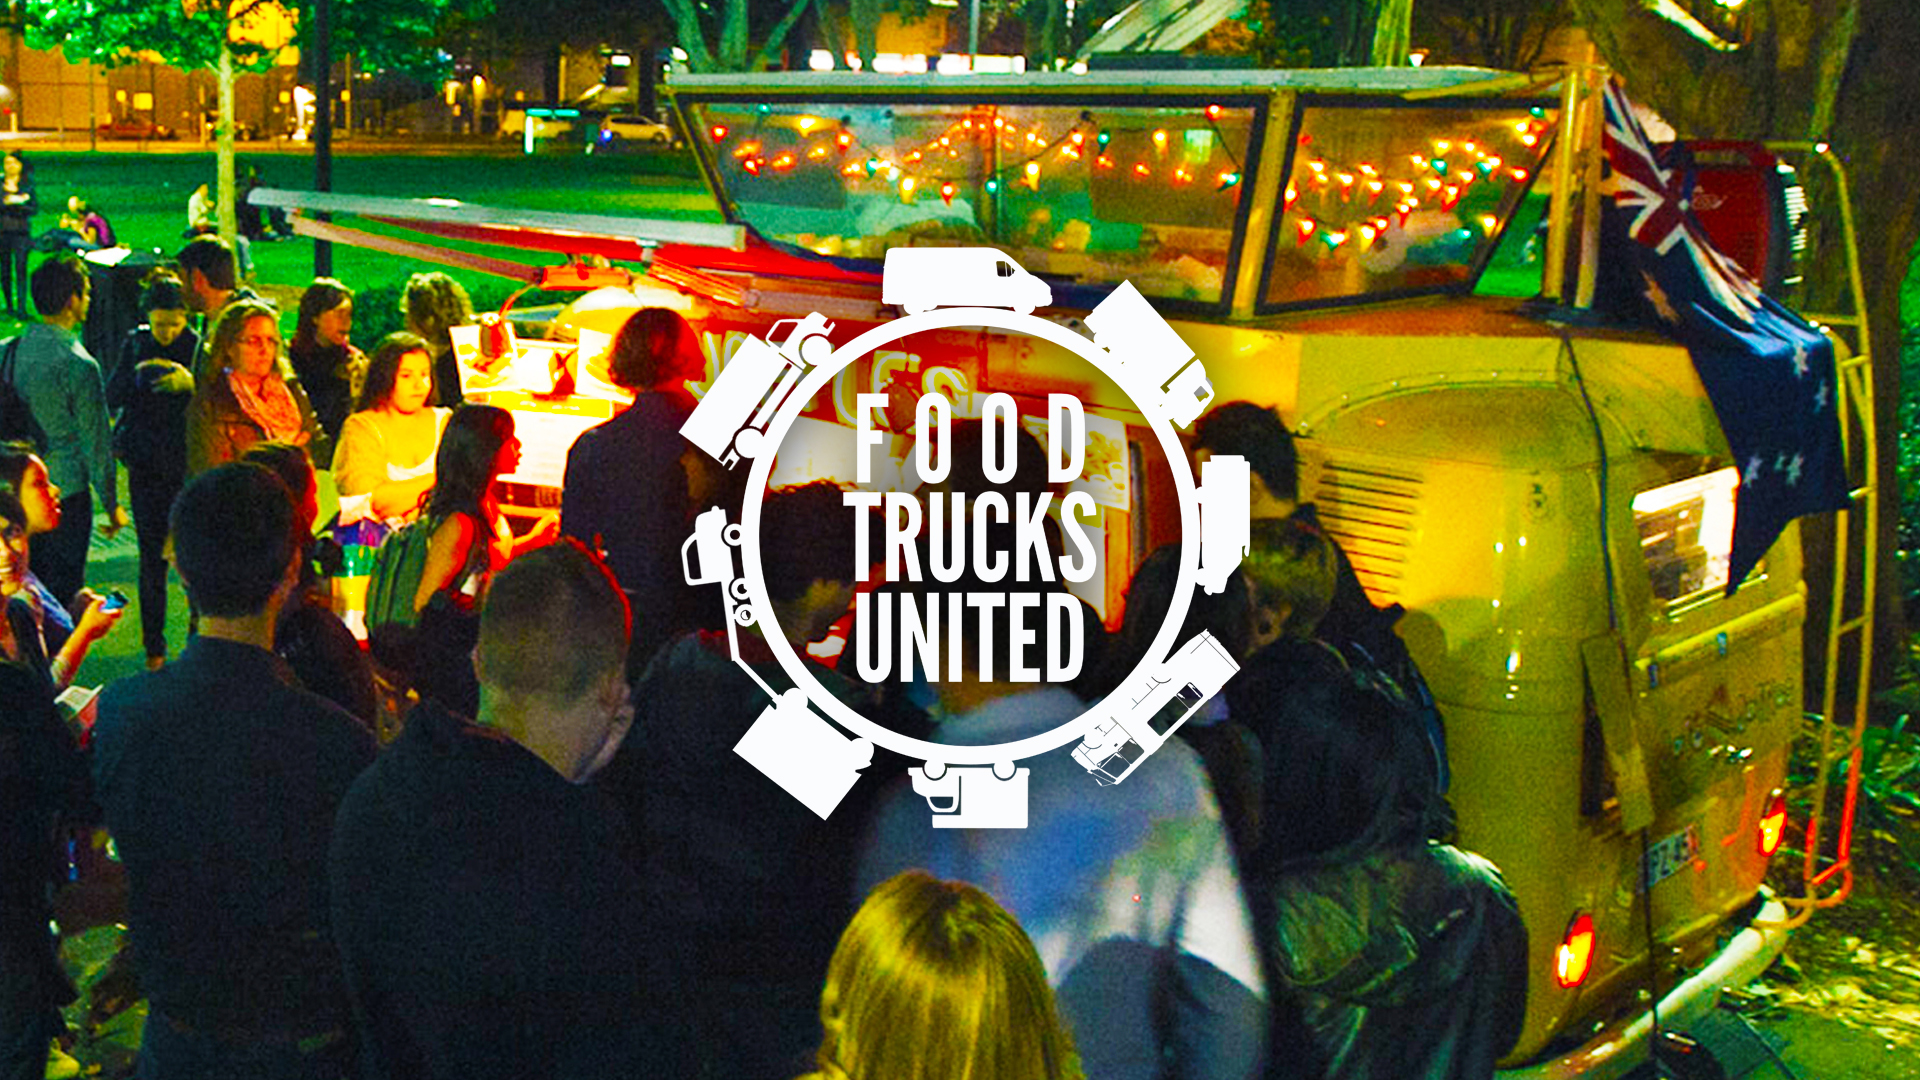 The Food Trucks United Arena attracts visitors to indulge in a night of diverse, distinctive and delicious flavours from some of Australia's best food trucks and food carts. Visitors have the opportunity to sample delectable and tantalising seasonal dishes on offer from participating foodtruckers.